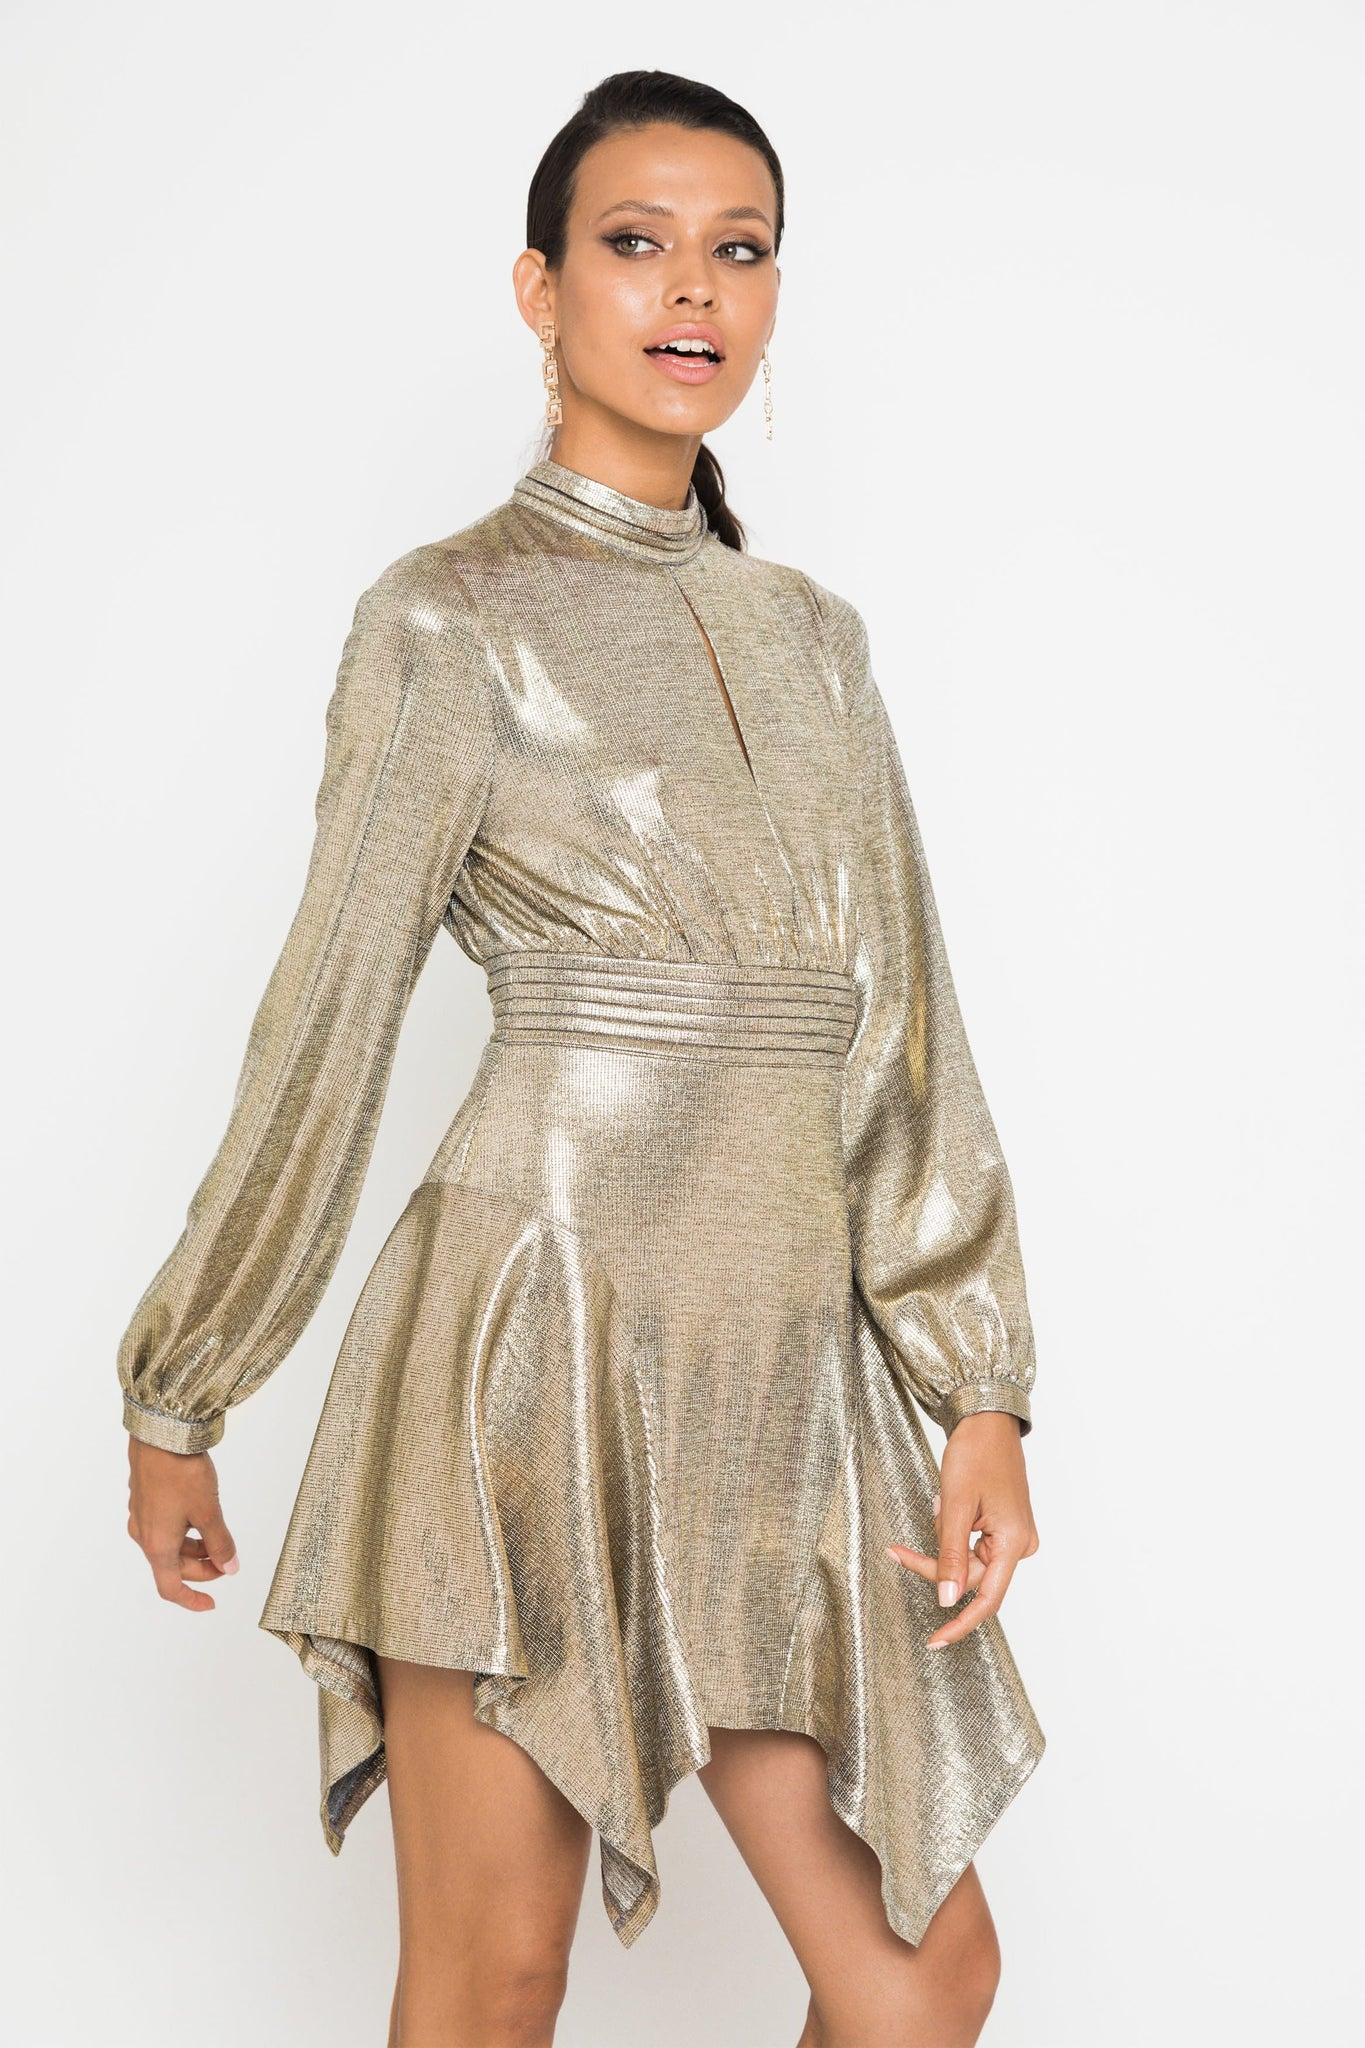 The Golden Era Mini Dress